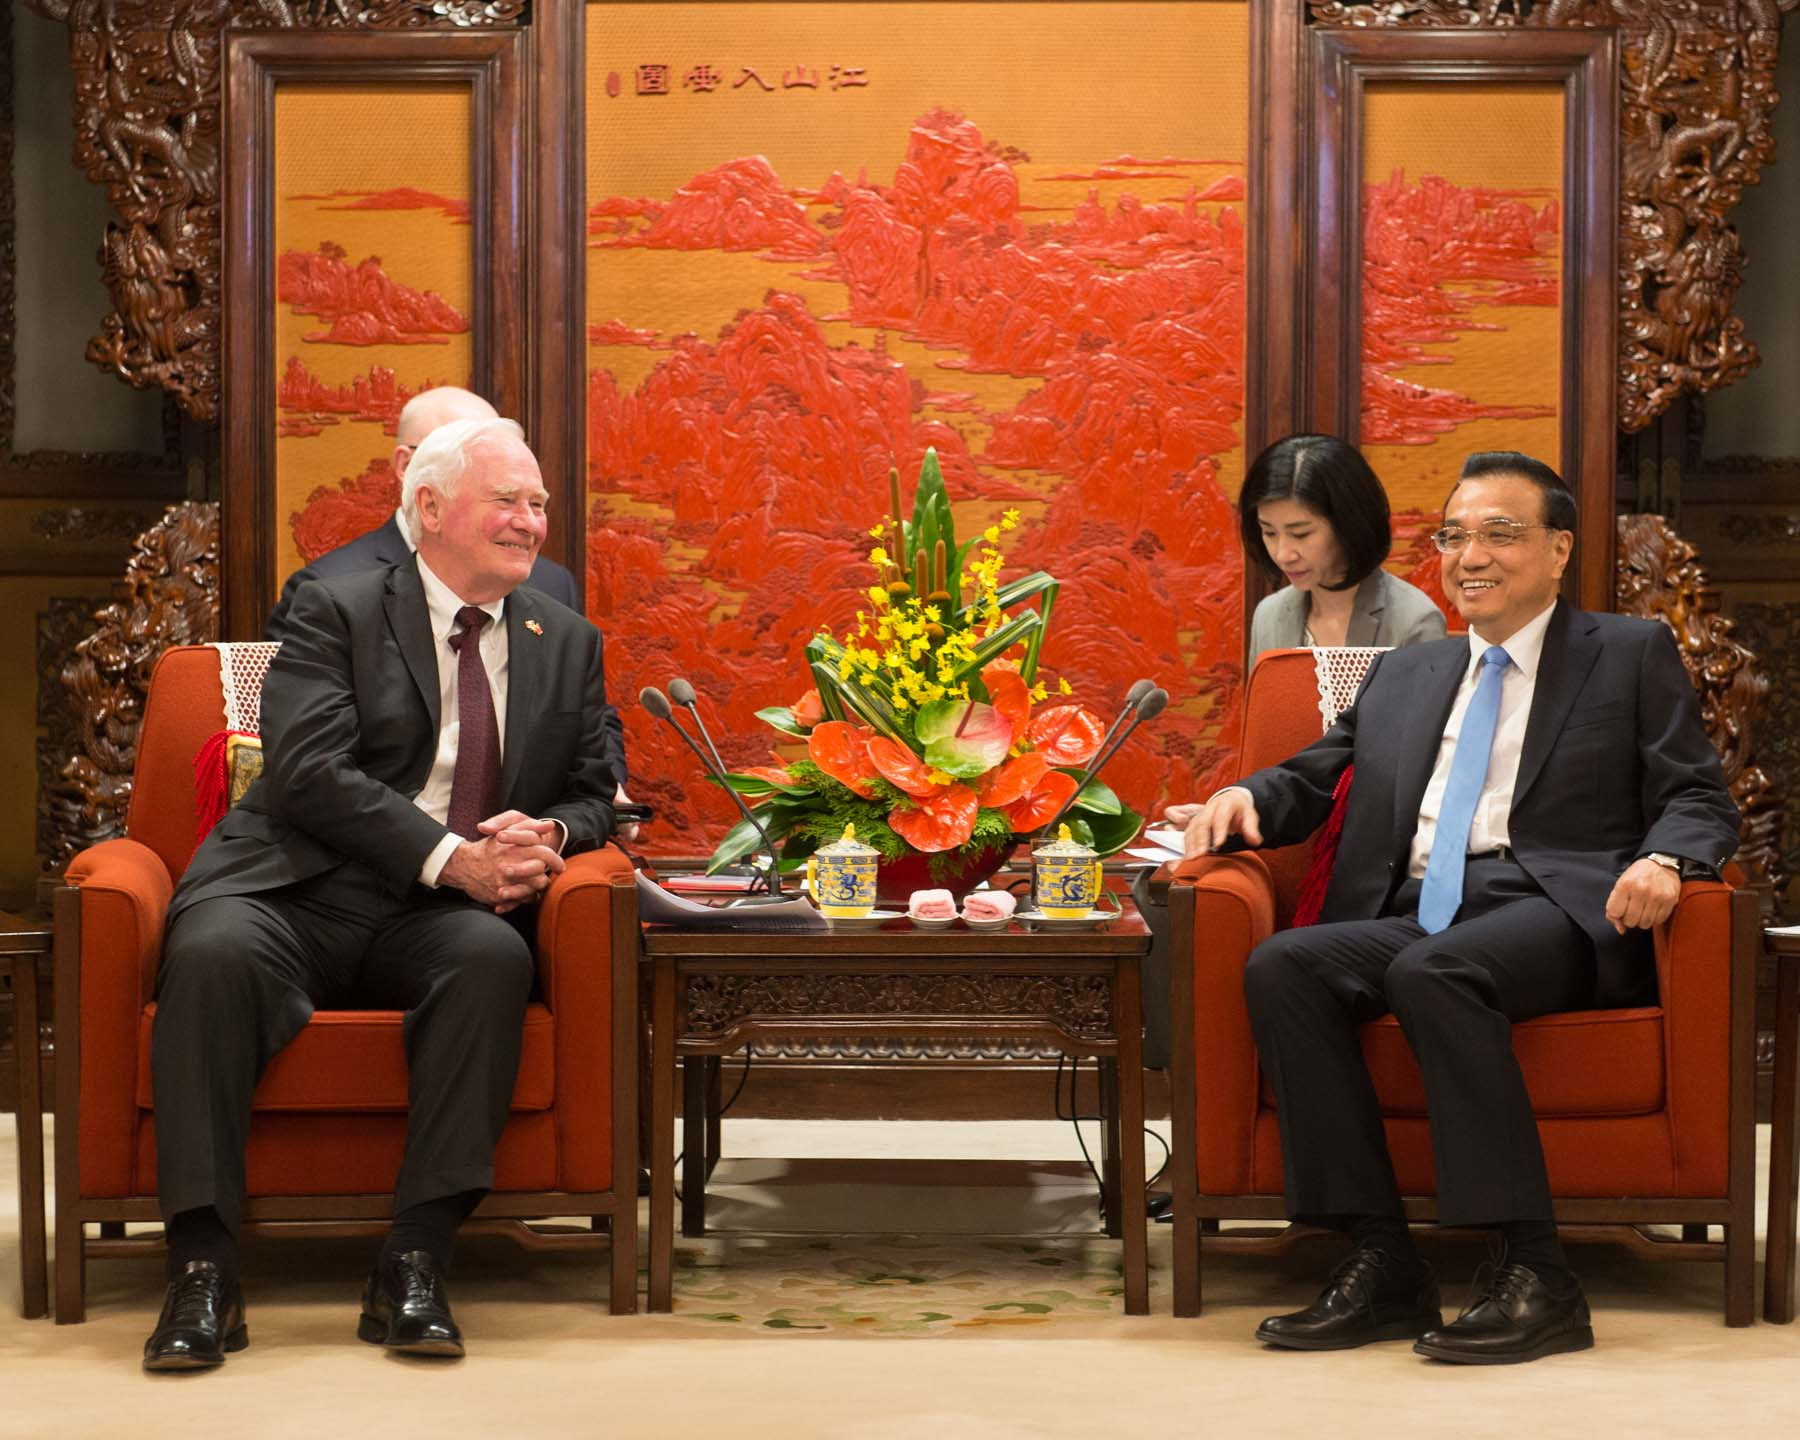 The Governor General met Premier Li in 2013 when Their Excellencies undertook a State visit to China, and again in 2016 when Premier Li visited Ottawa.